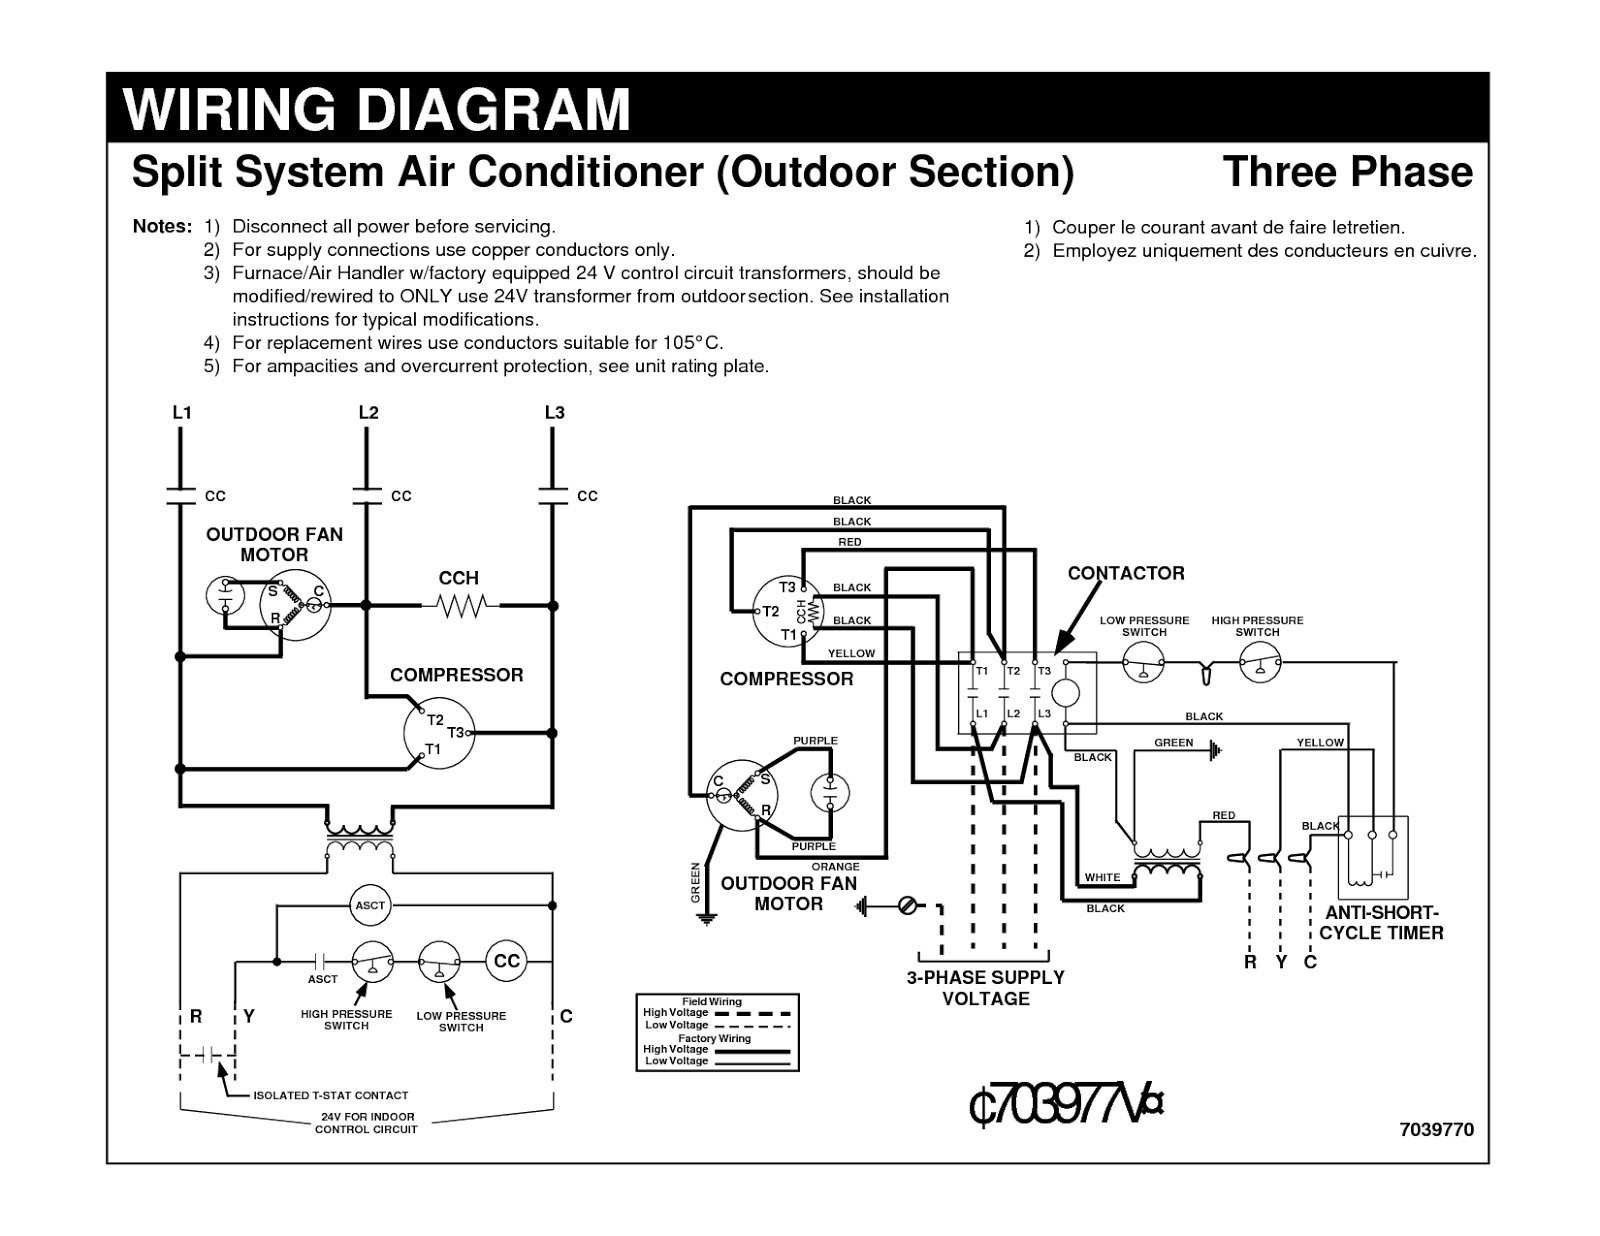 Unique Ac Schematics Diagram Wiringdiagram Diagramming Diagramm Visuals Visualisation Graphical Electrical Circuit Diagram